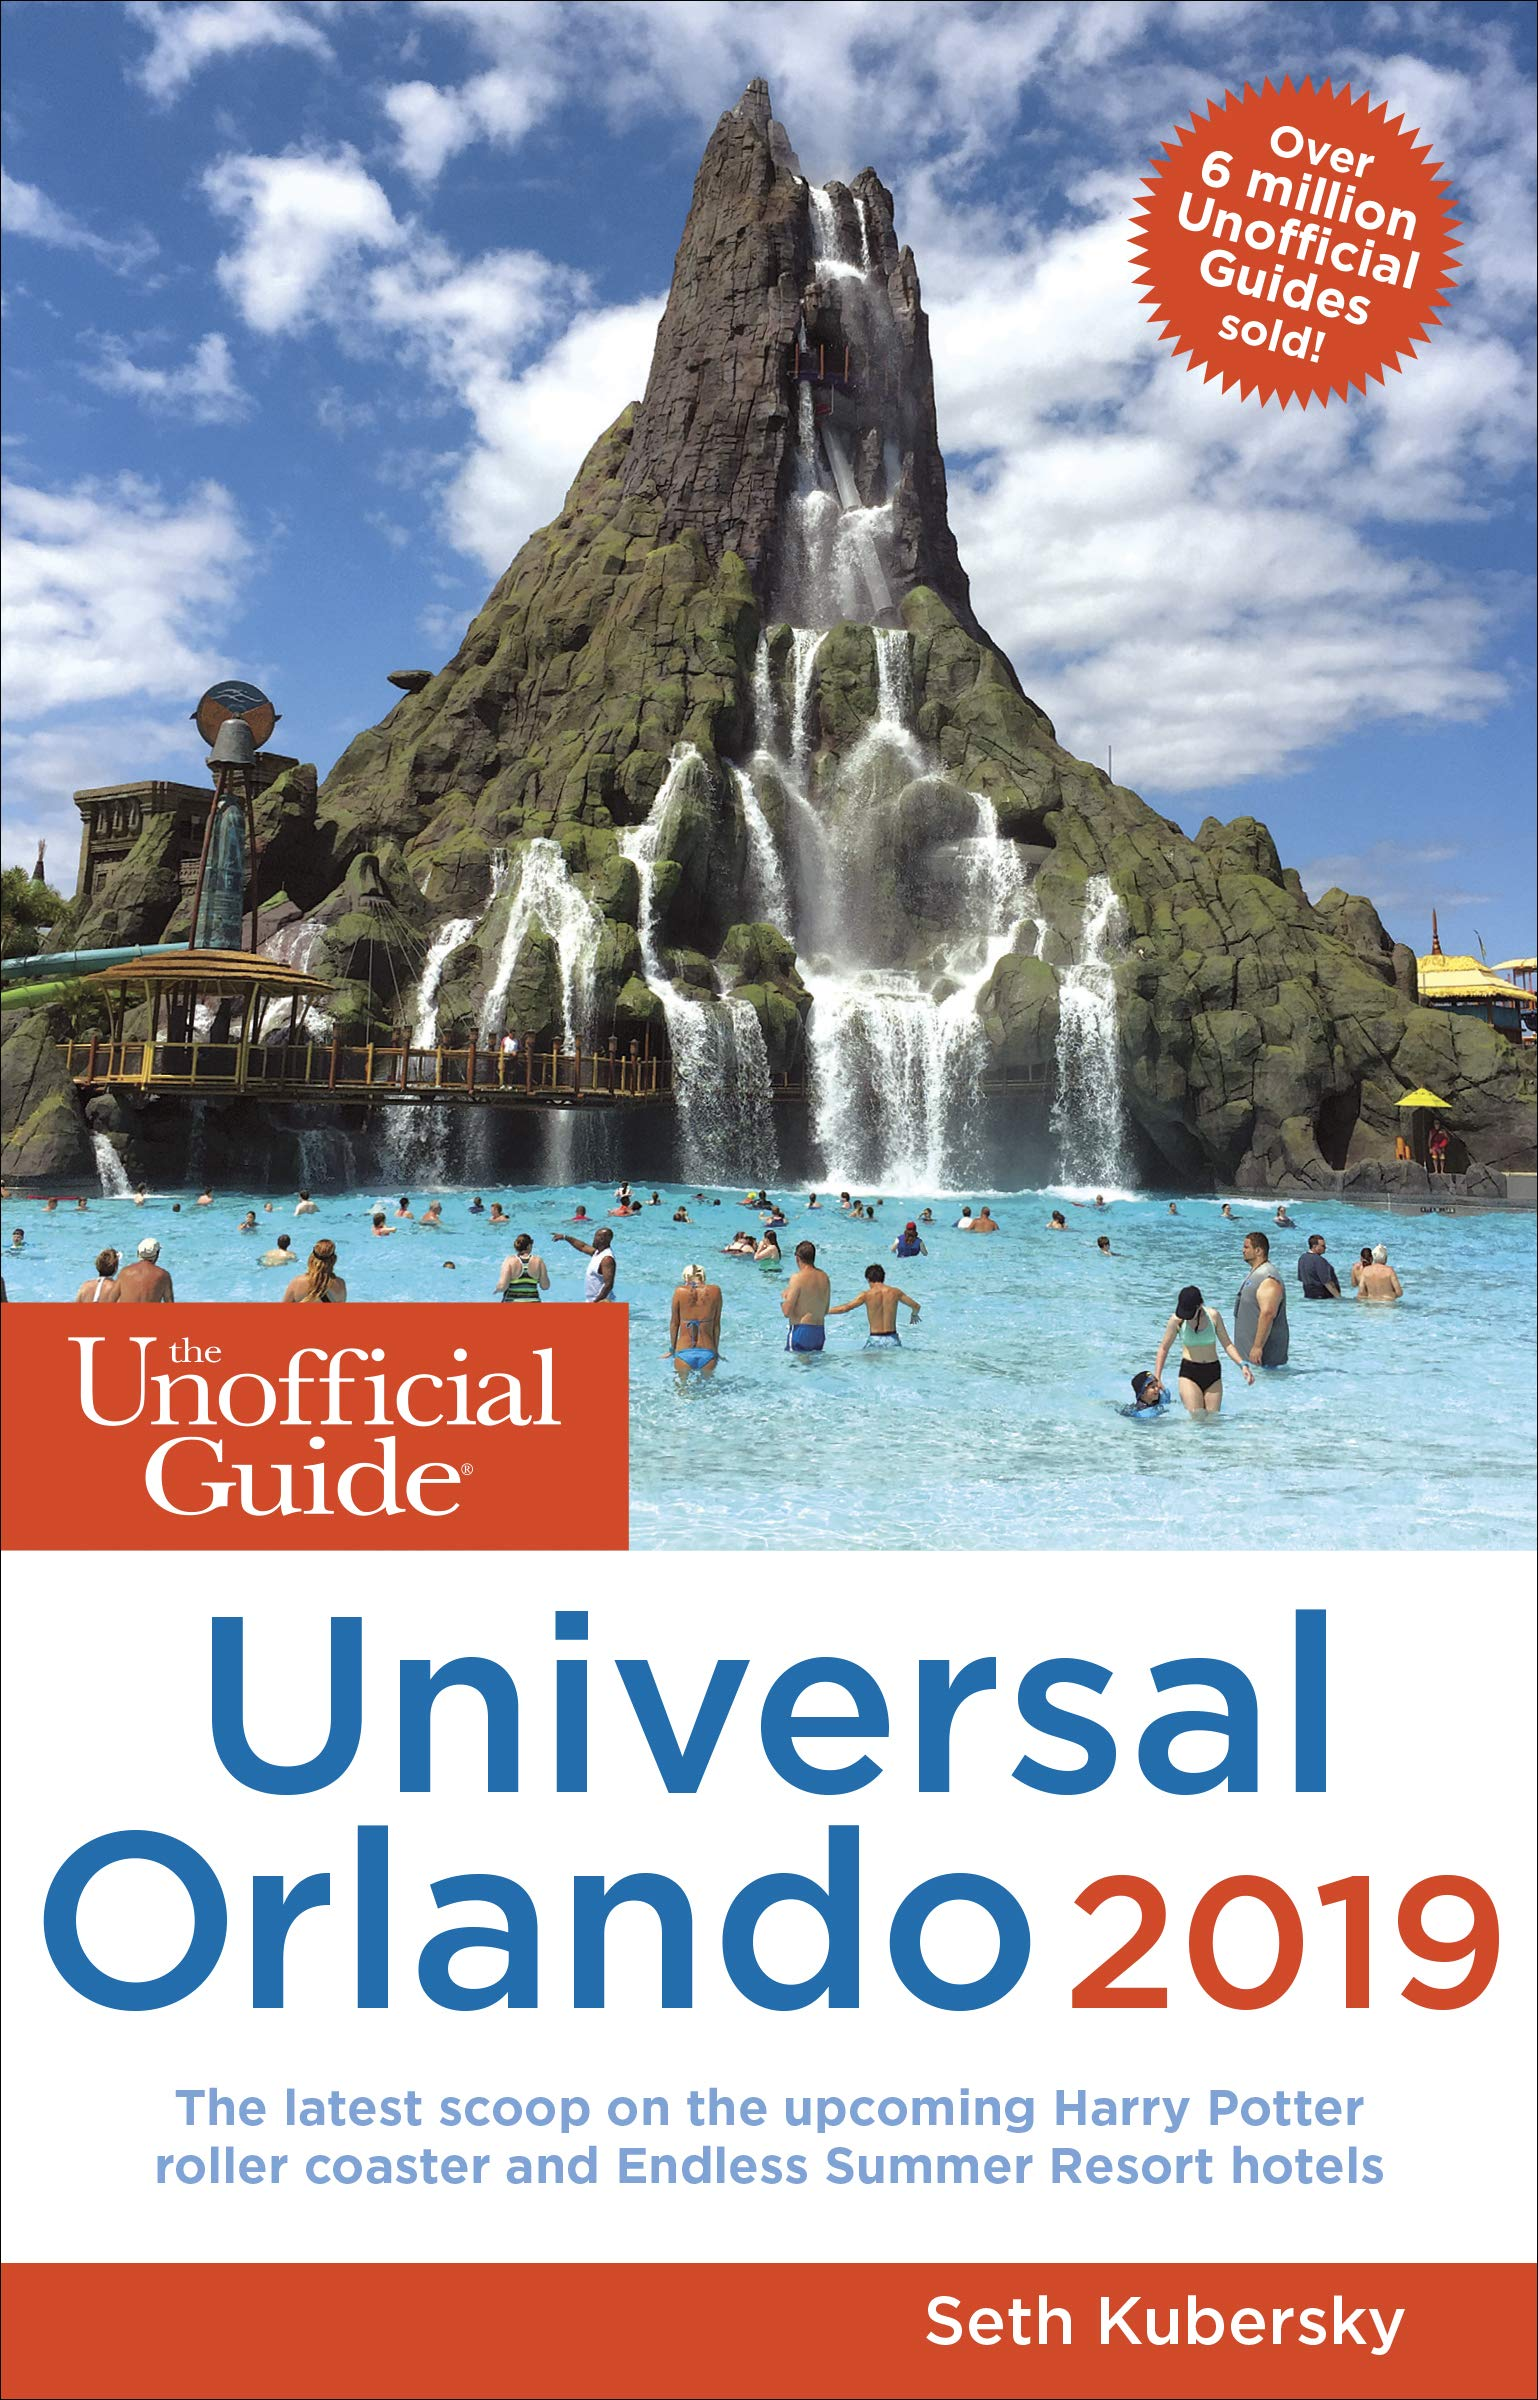 The Unofficial Guide to Universal Orlando 2019 (Unofficial